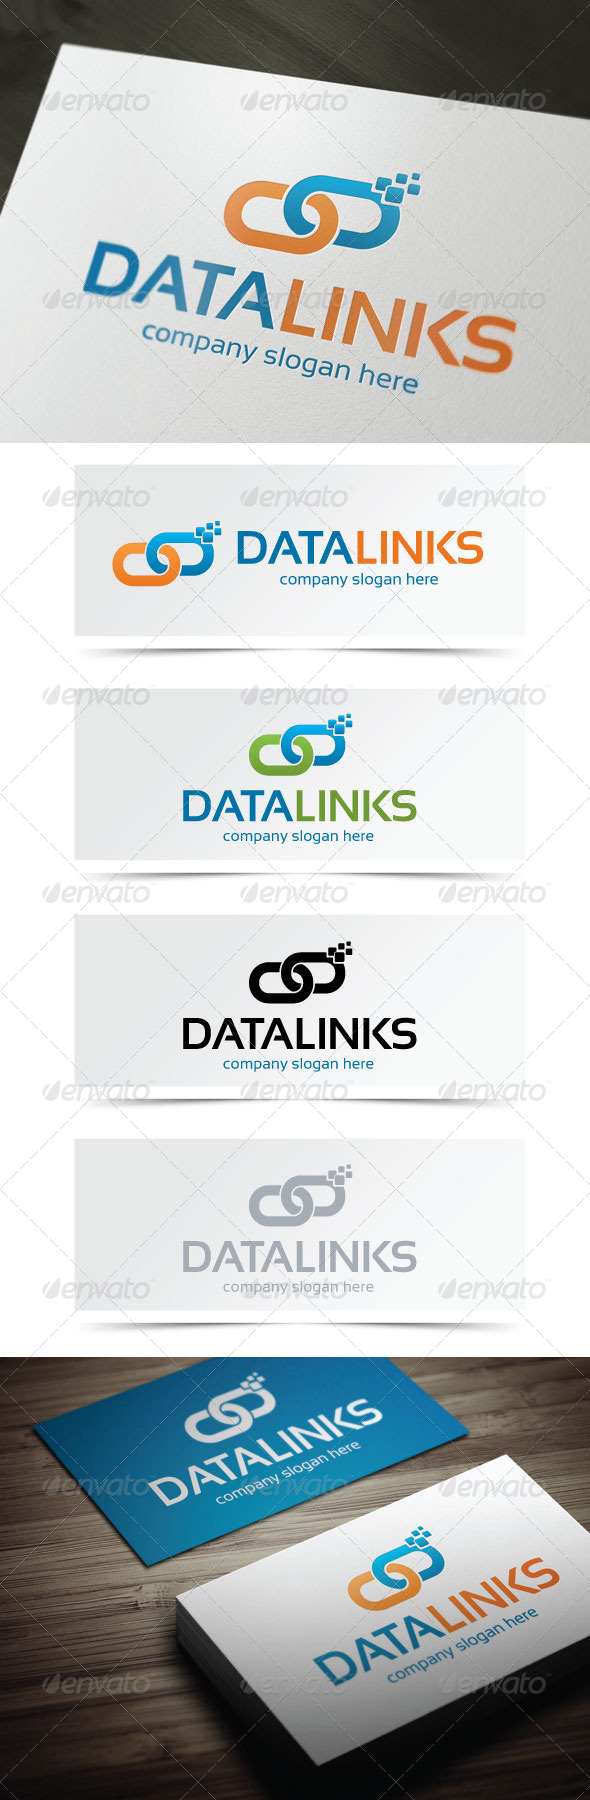 GraphicRiver Data Links 5158907